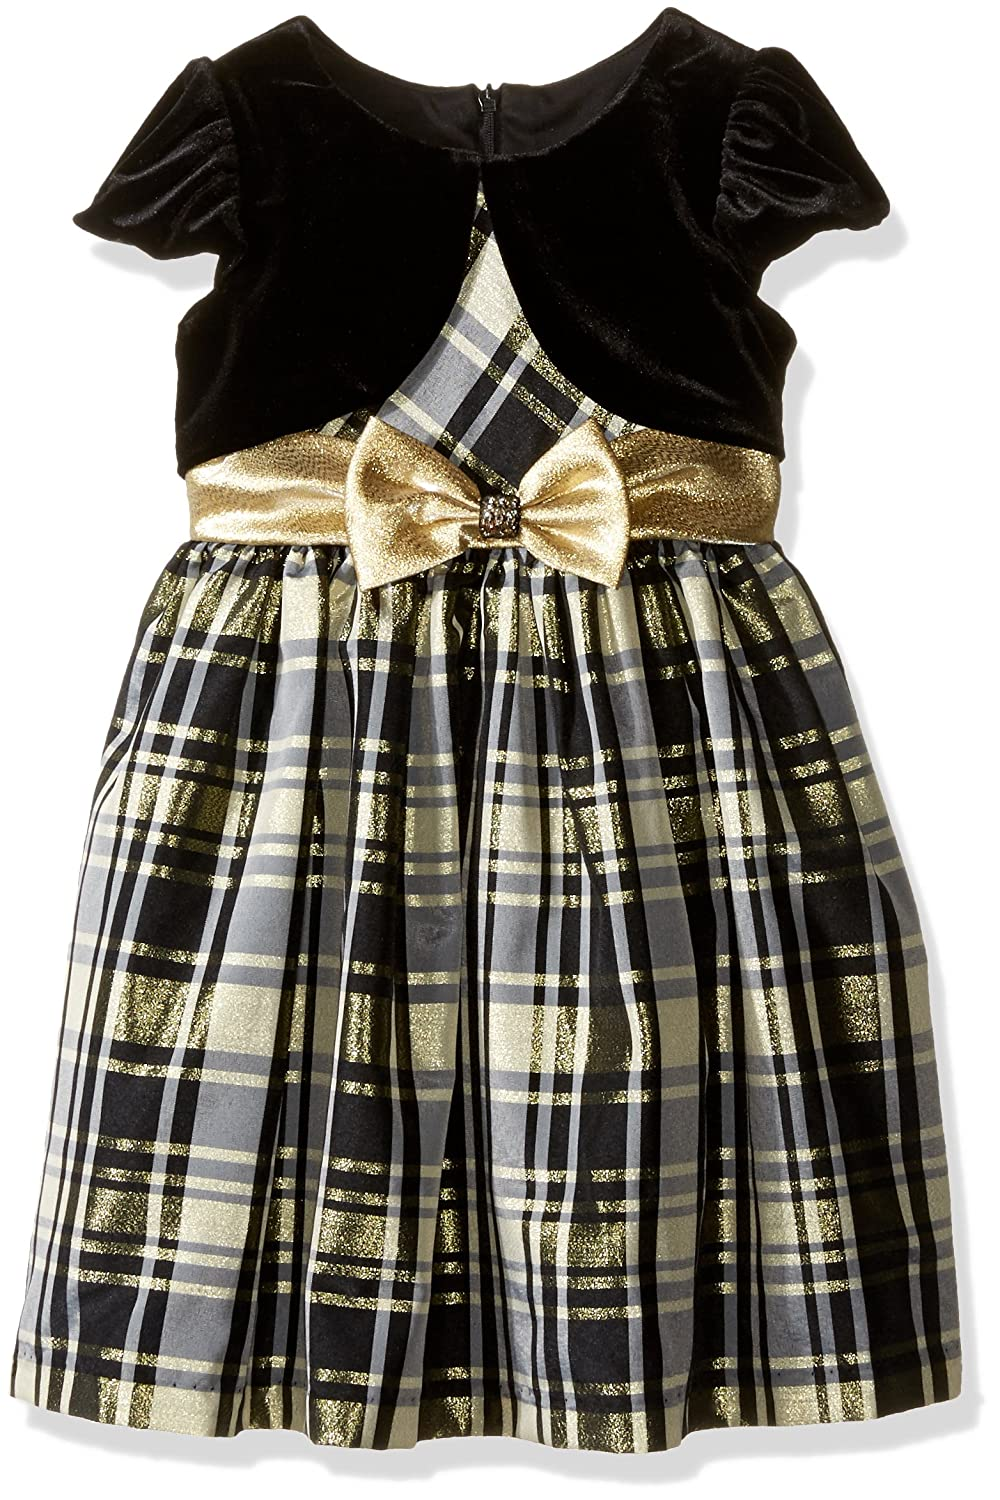 Kids 1950s Clothing & Costumes: Girls, Boys, Toddlers Bonnie Jean Girls Taffeta Plaid Cardigan Dress $47.50 AT vintagedancer.com